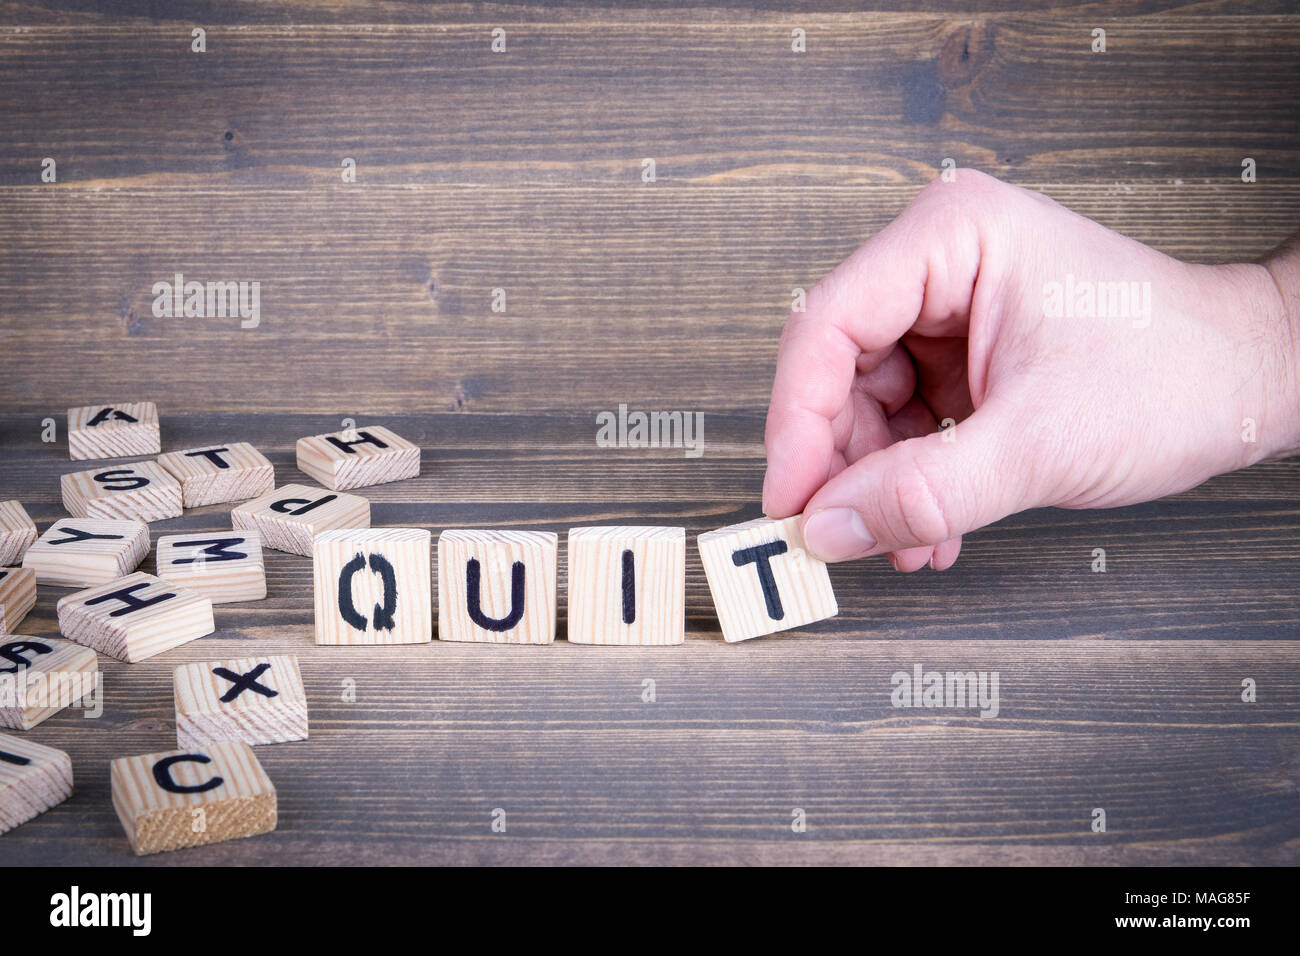 Quit. Wooden letters on the office desk - Stock Image